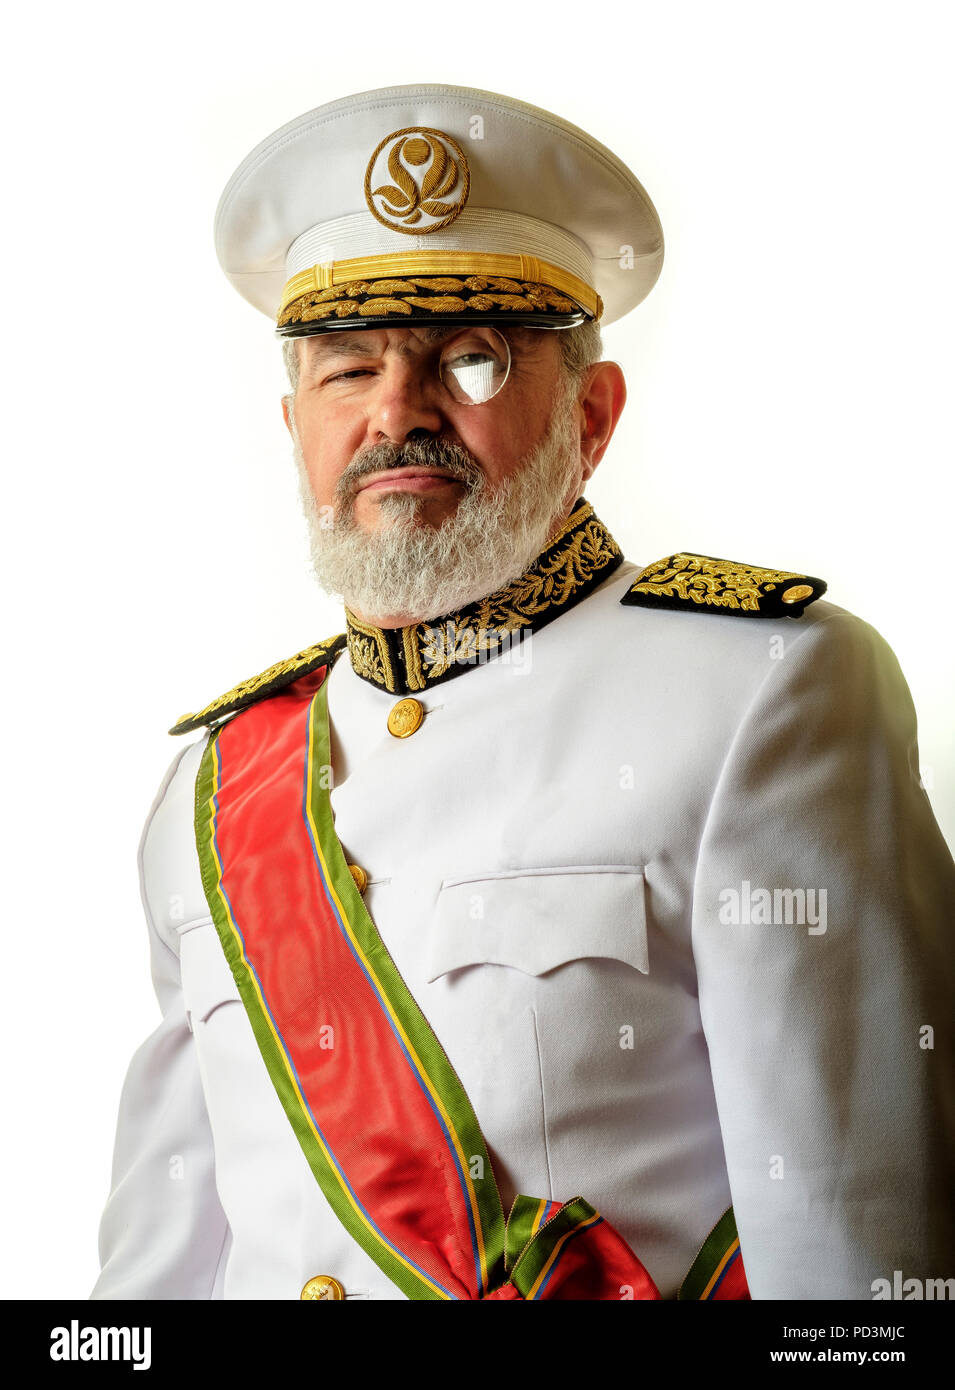 Fictional character : Governor Babala with white full uniform, red honorific sash and monocle, - Stock Image